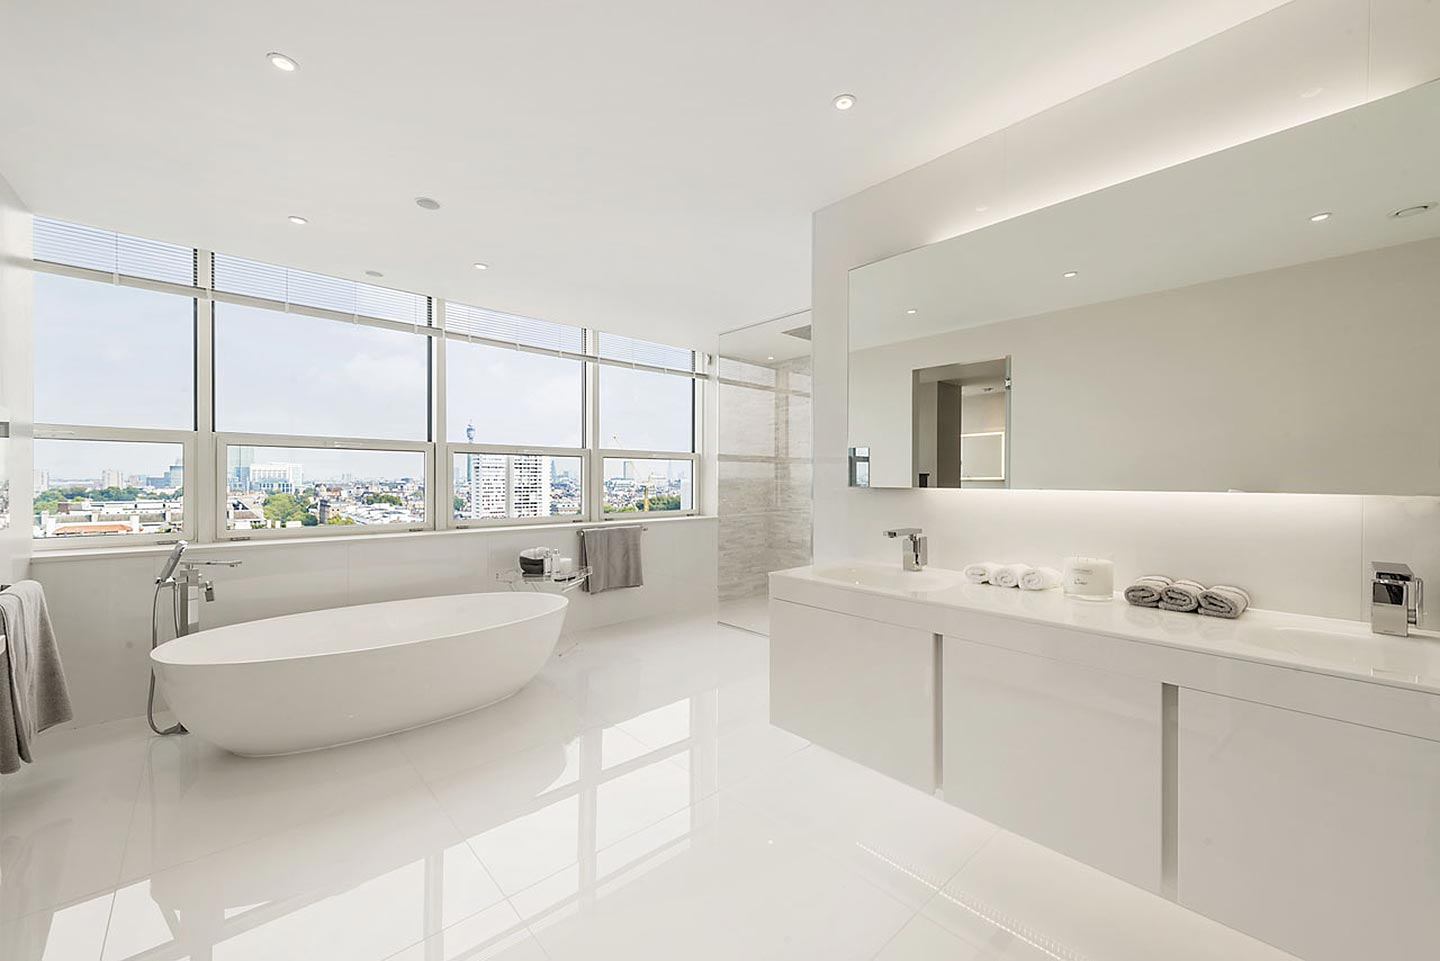 Telegraph - The world's best bathrooms in pictures   TBK ...